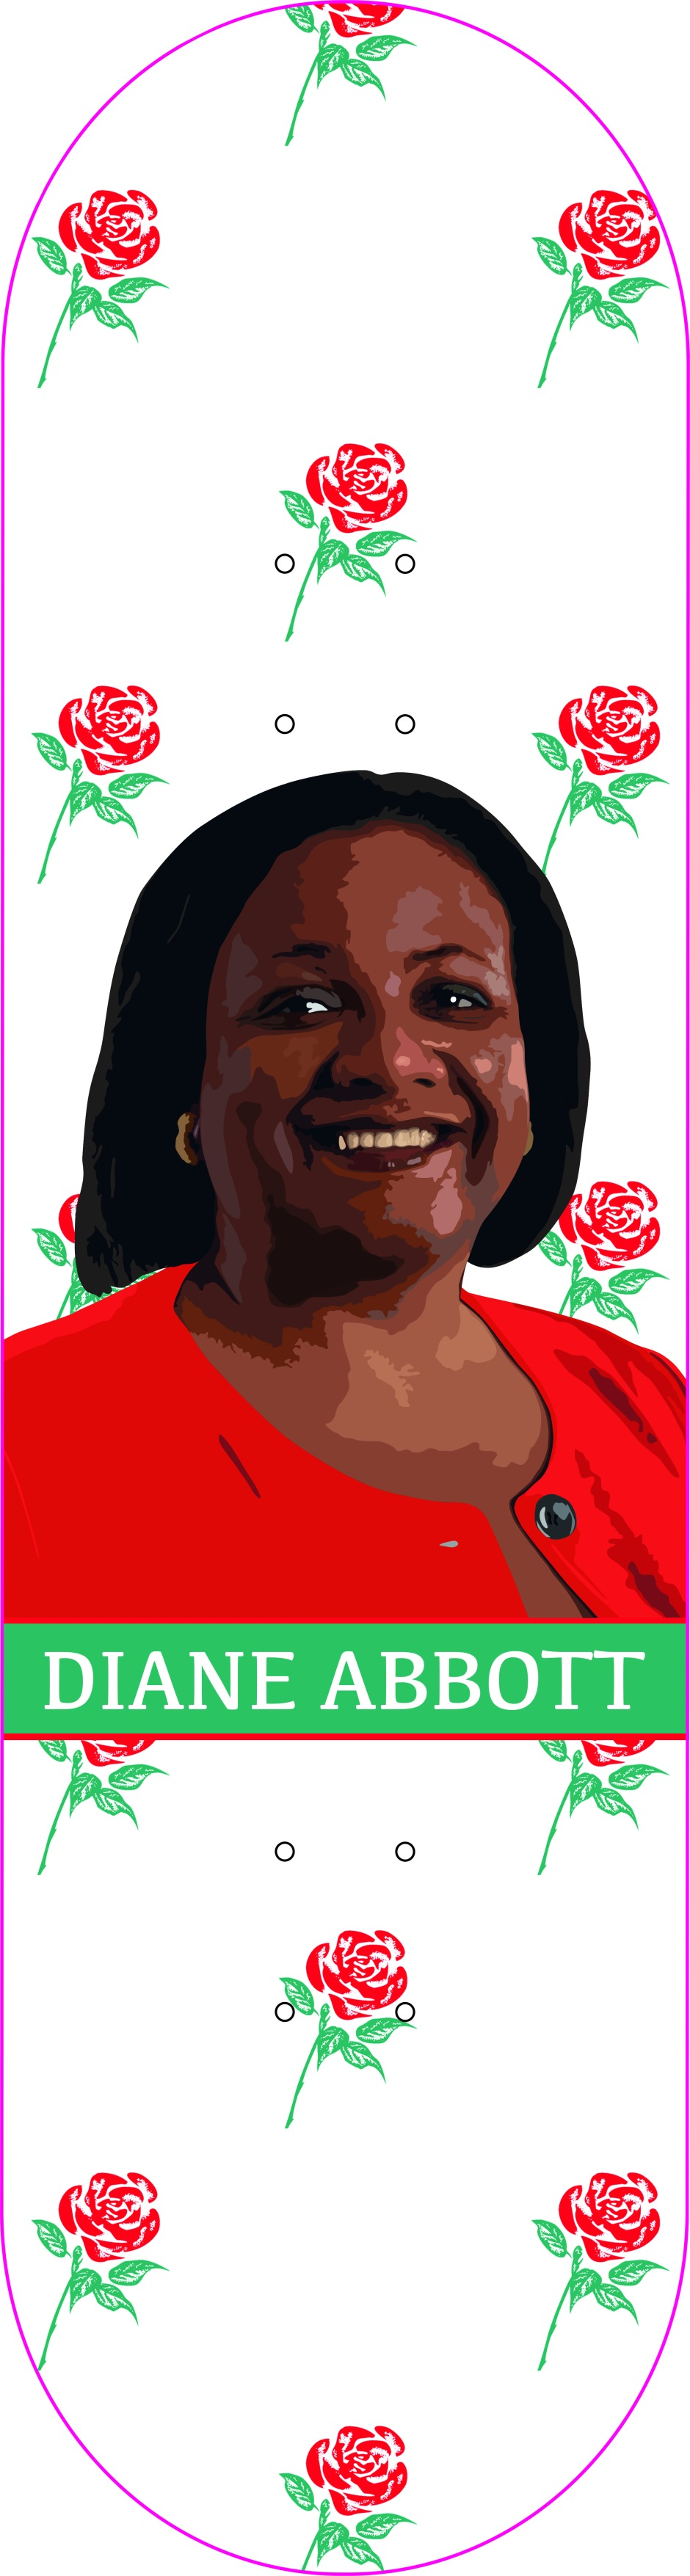 Diane Abbott final